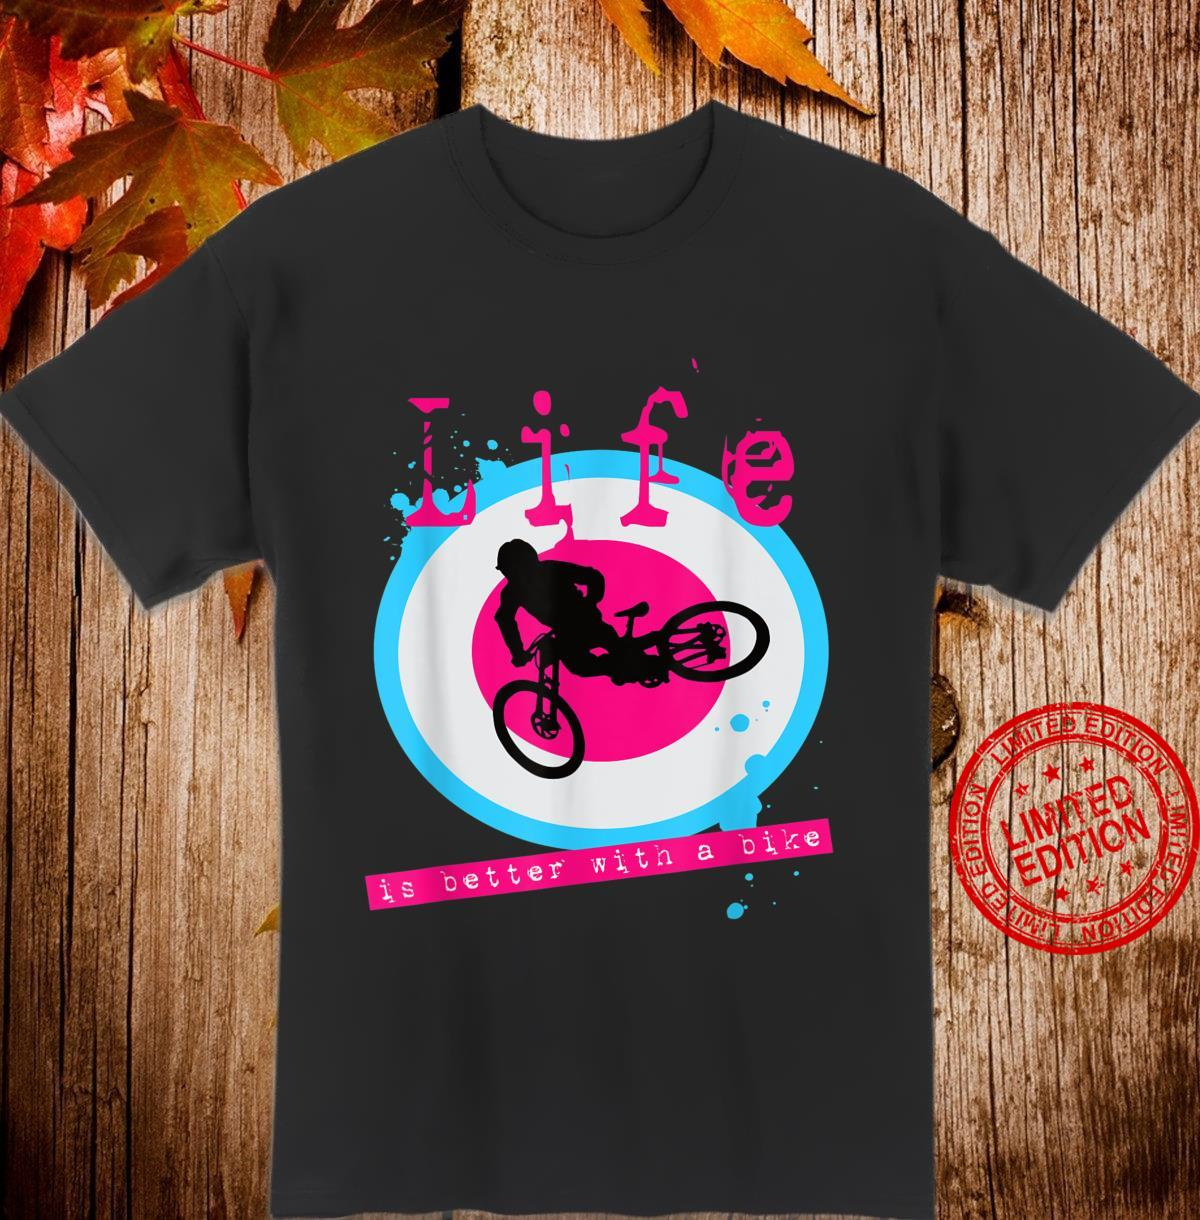 Life is better with a bike Shirt